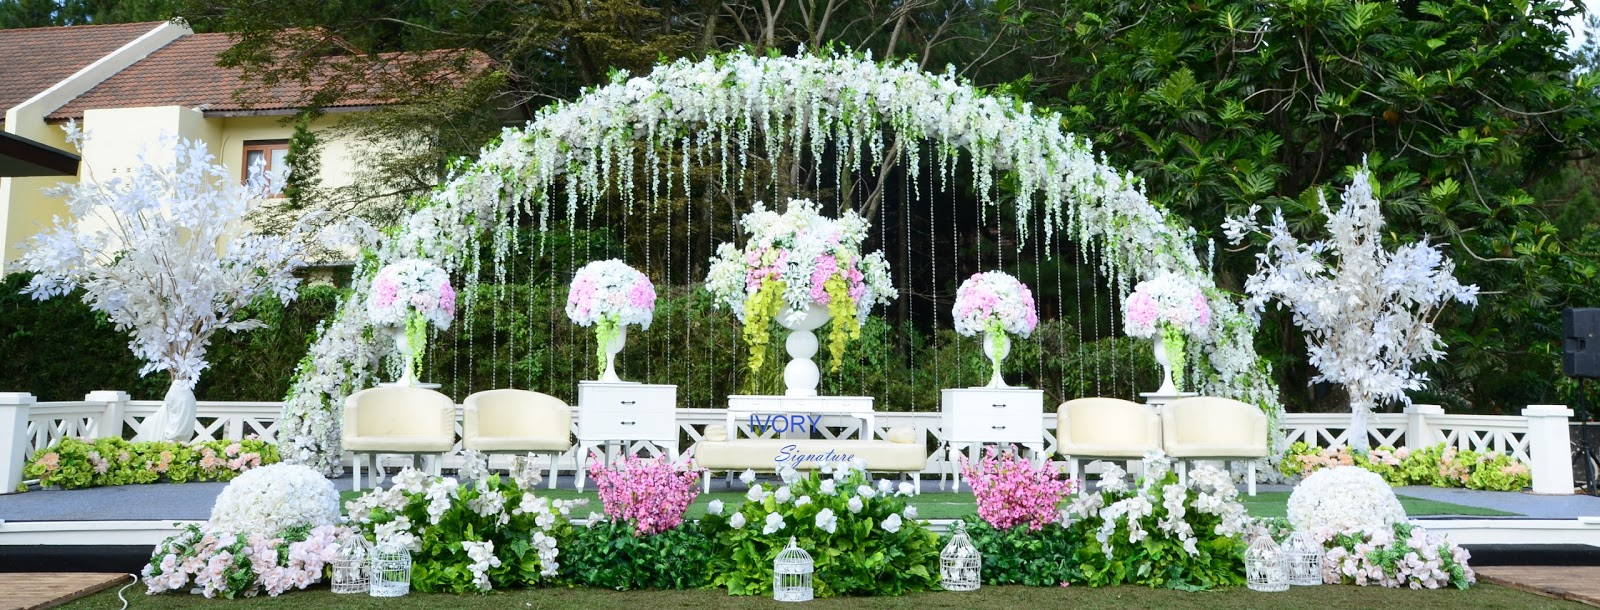 Ivory signature catering and decoration by ivory signature arini ilham wedding sunday may 30th 2015 maximo resto puri setiabudi bandung junglespirit Choice Image